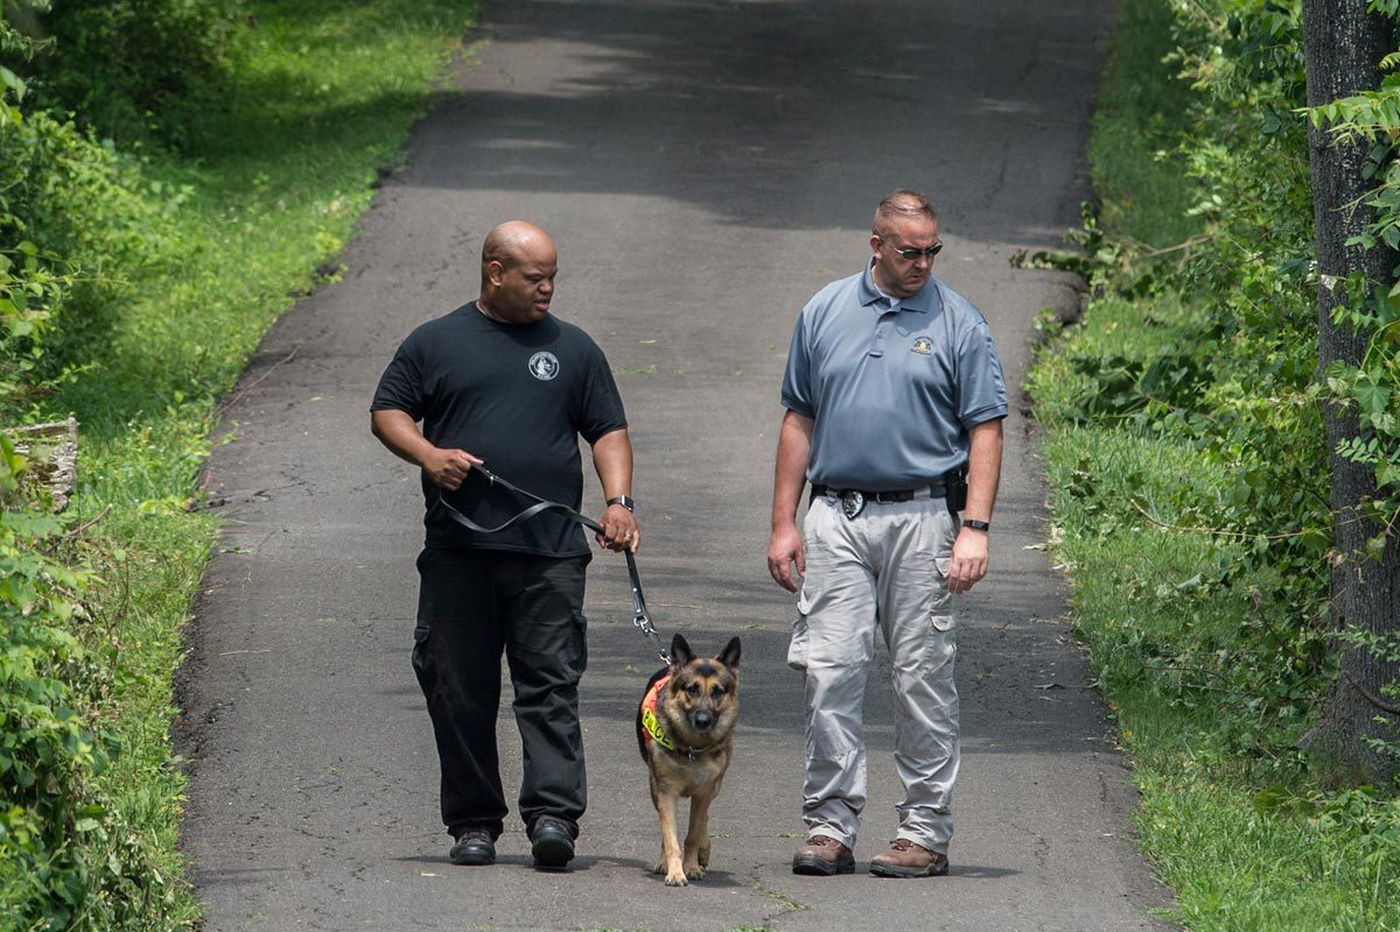 How did cadaver dogs detect Bucks County bodies 12 feet underground?